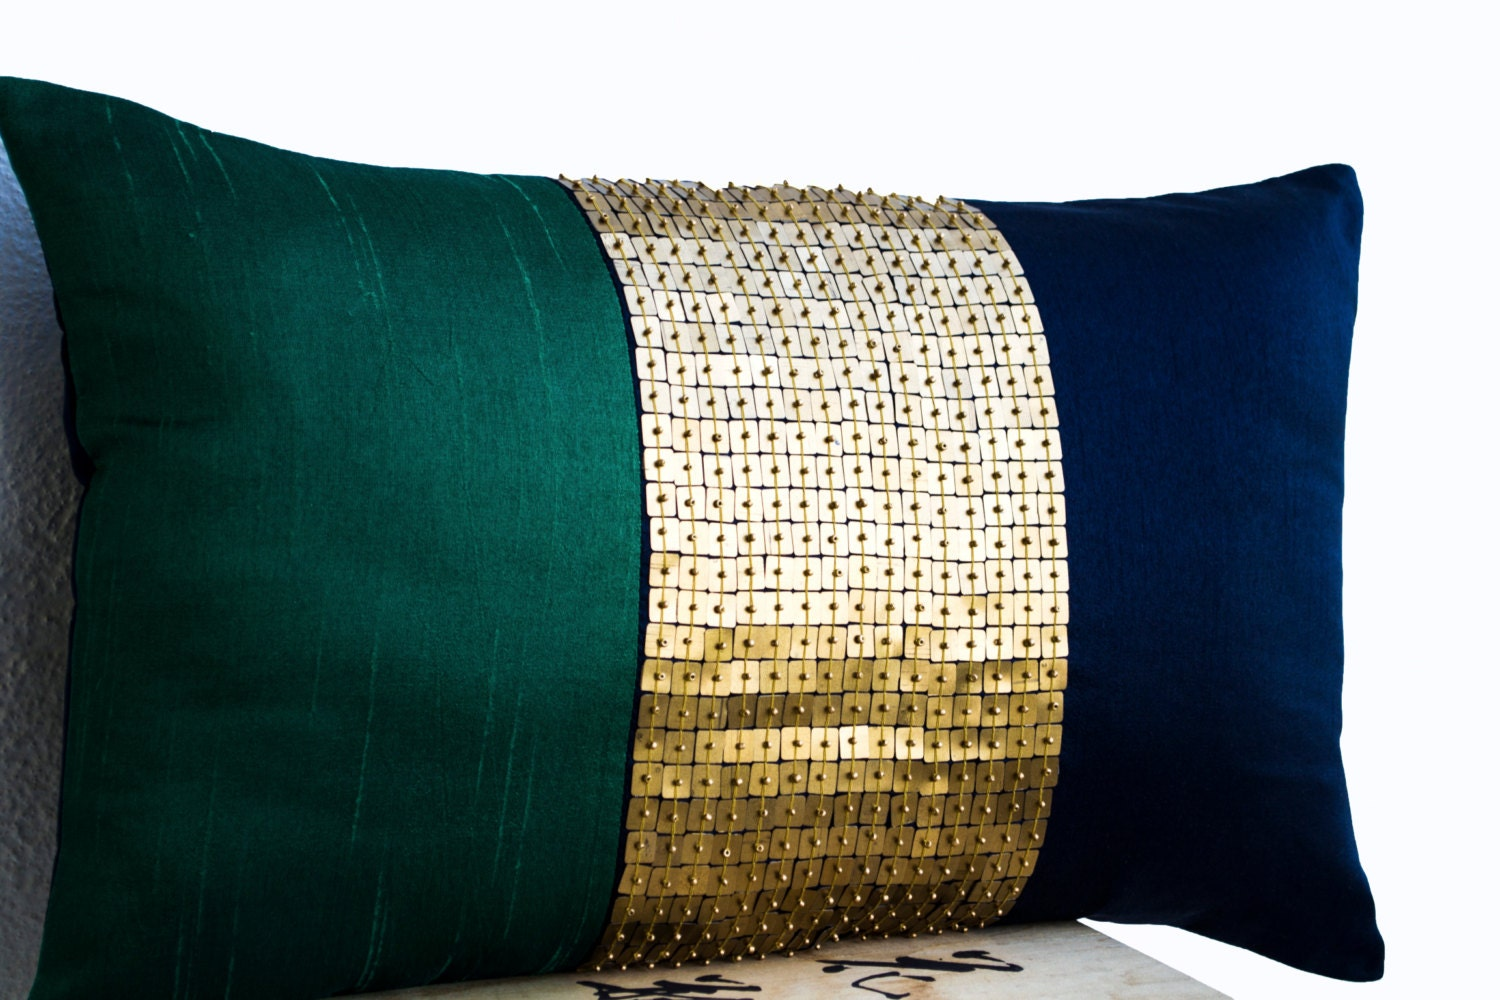 Navy Blue And Gold Decorative Pillows : Beaded Throw Pillow Cover Emerald green navy blue gold color